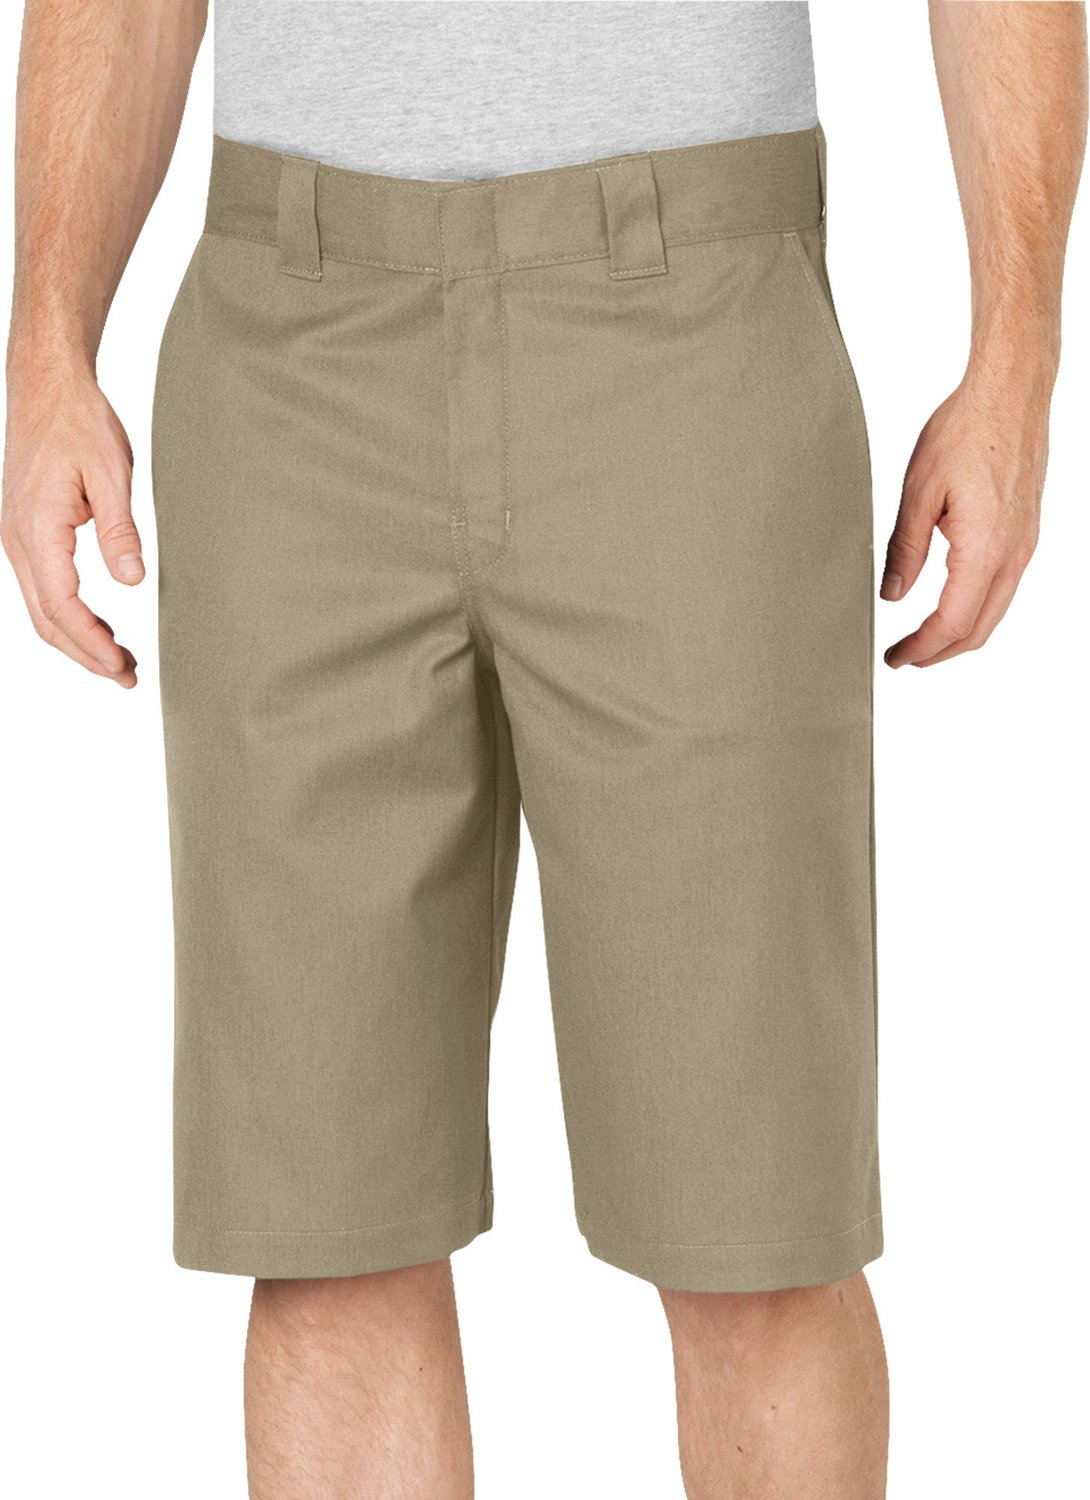 c5a5214e3 Display product reviews for Dickies Men's Flex Relaxed Fit Work Shorts